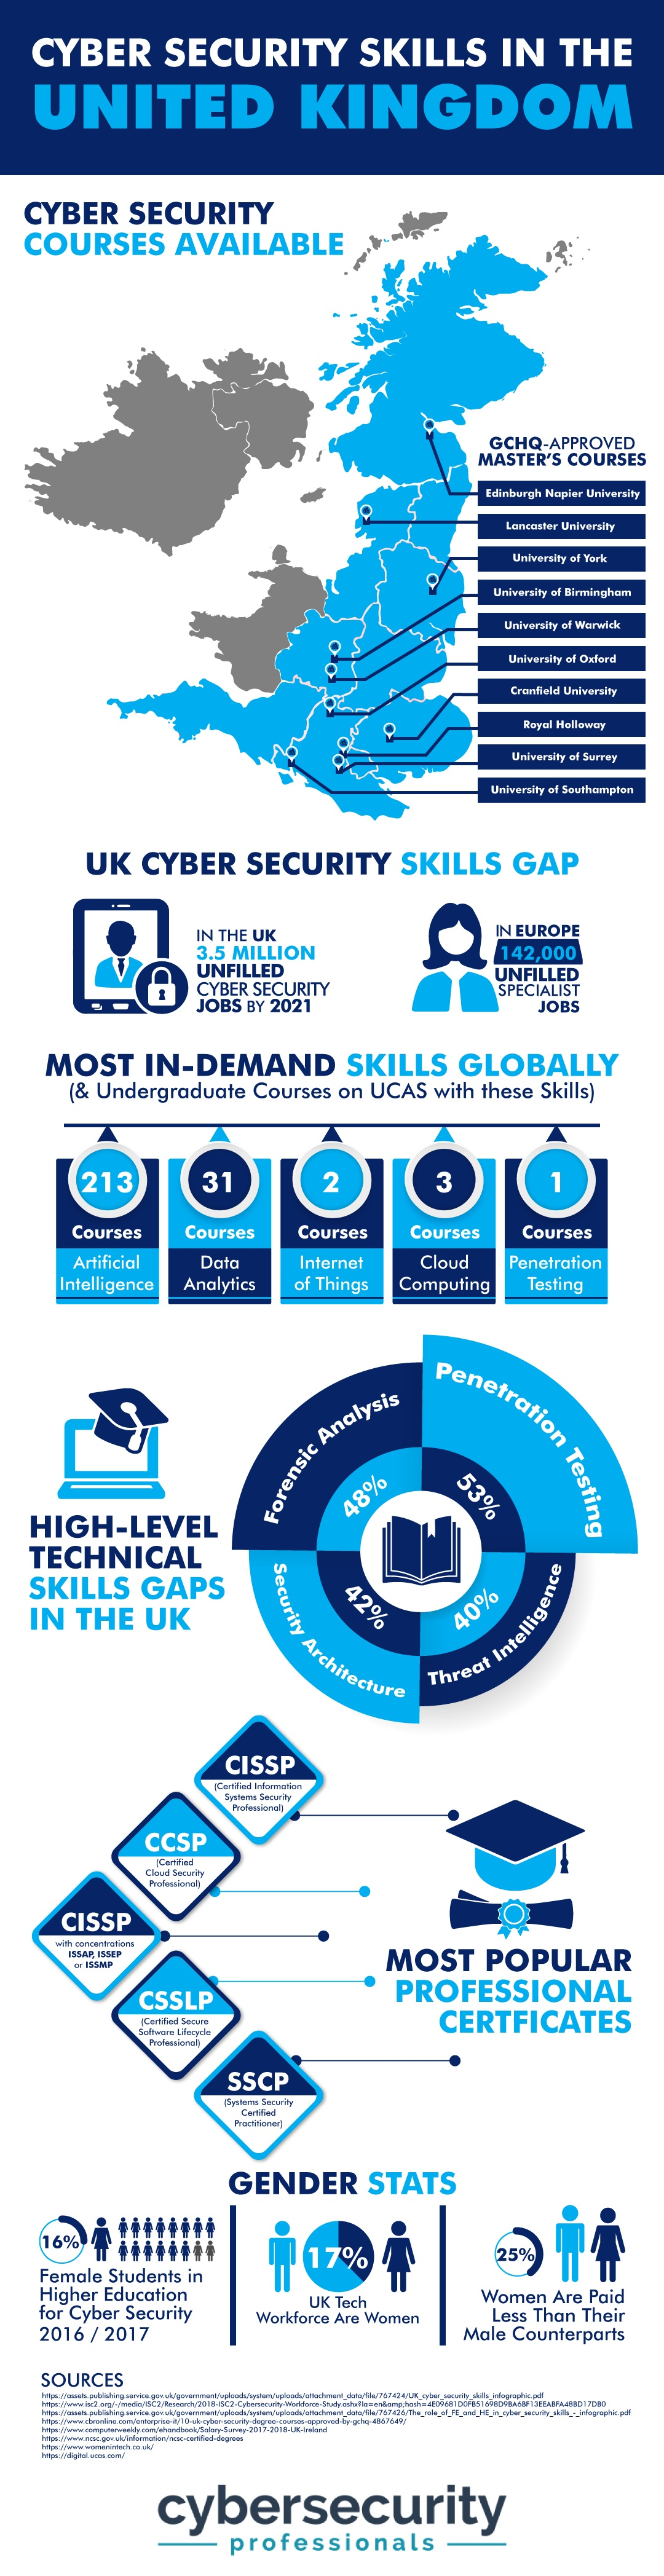 Infographic detailing the cybersecurity skills gap in the UK.